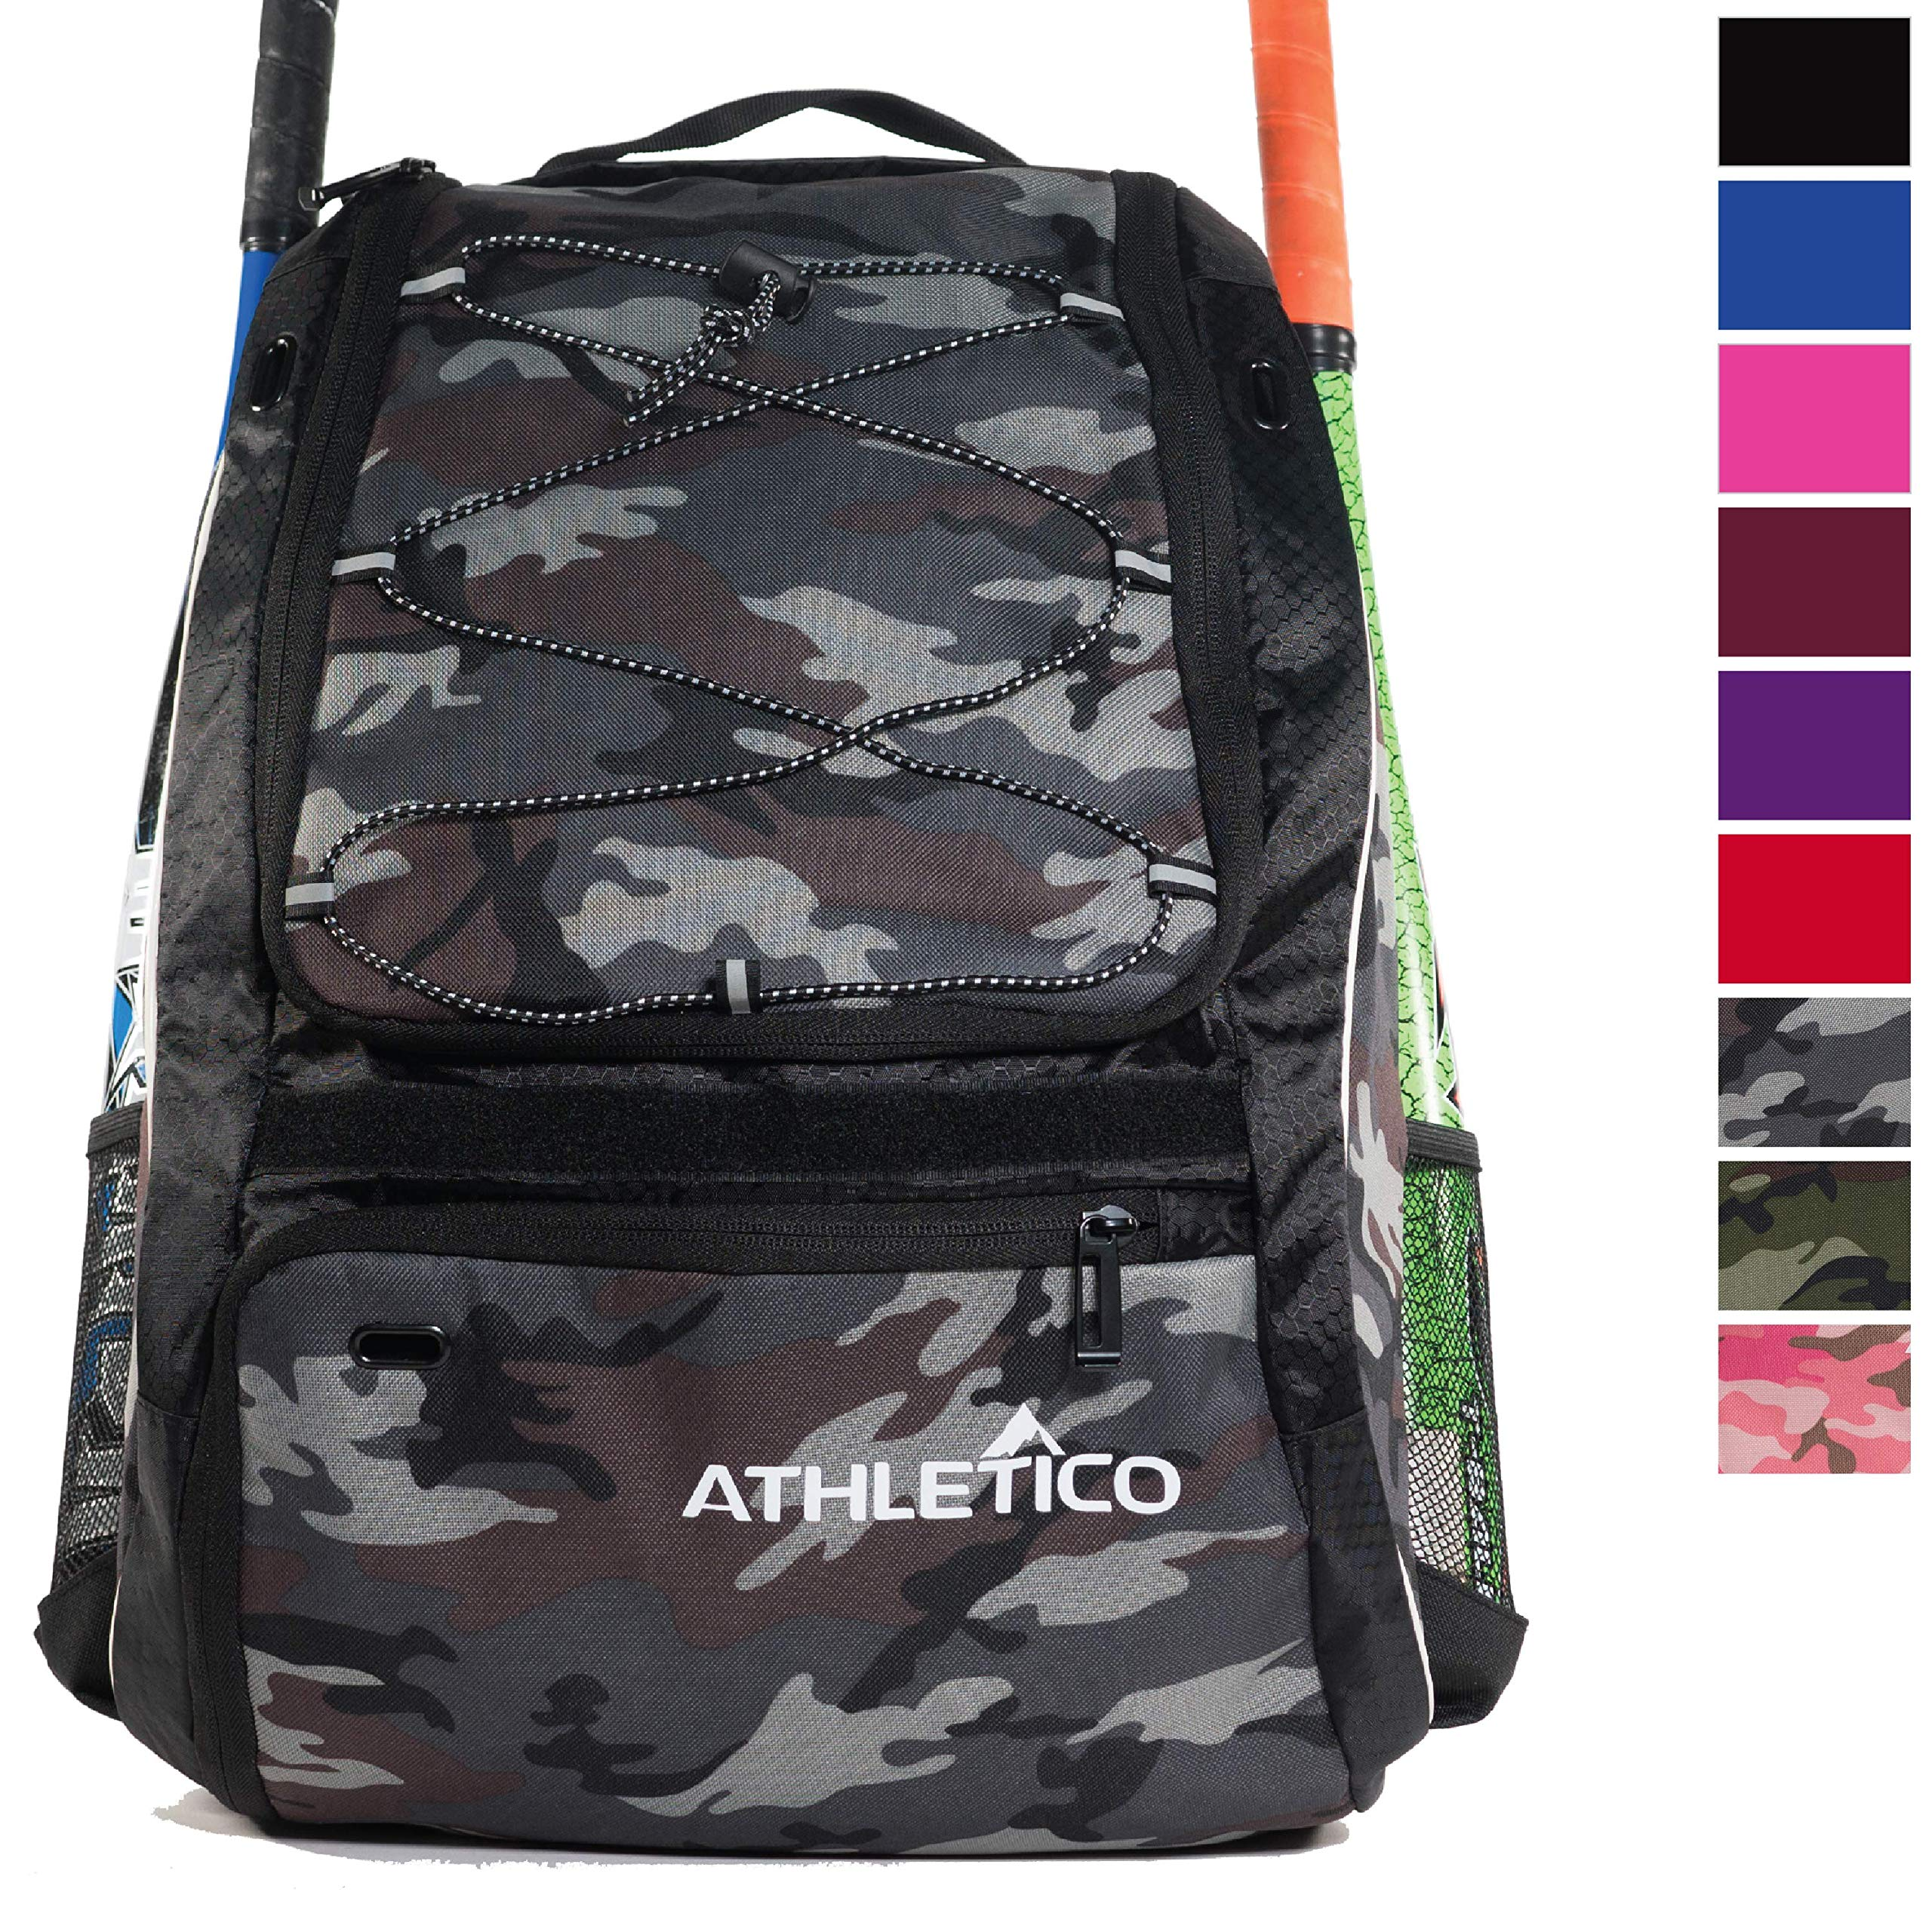 Athletico Baseball Bat Bag - Backpack for Baseball, T-Ball & Softball Equipment & Gear for Youth and Adults | Holds Bat, Helmet, Glove, Shoes |Shoe Compartment & Fence Hook (Gray Camo) by Athletico